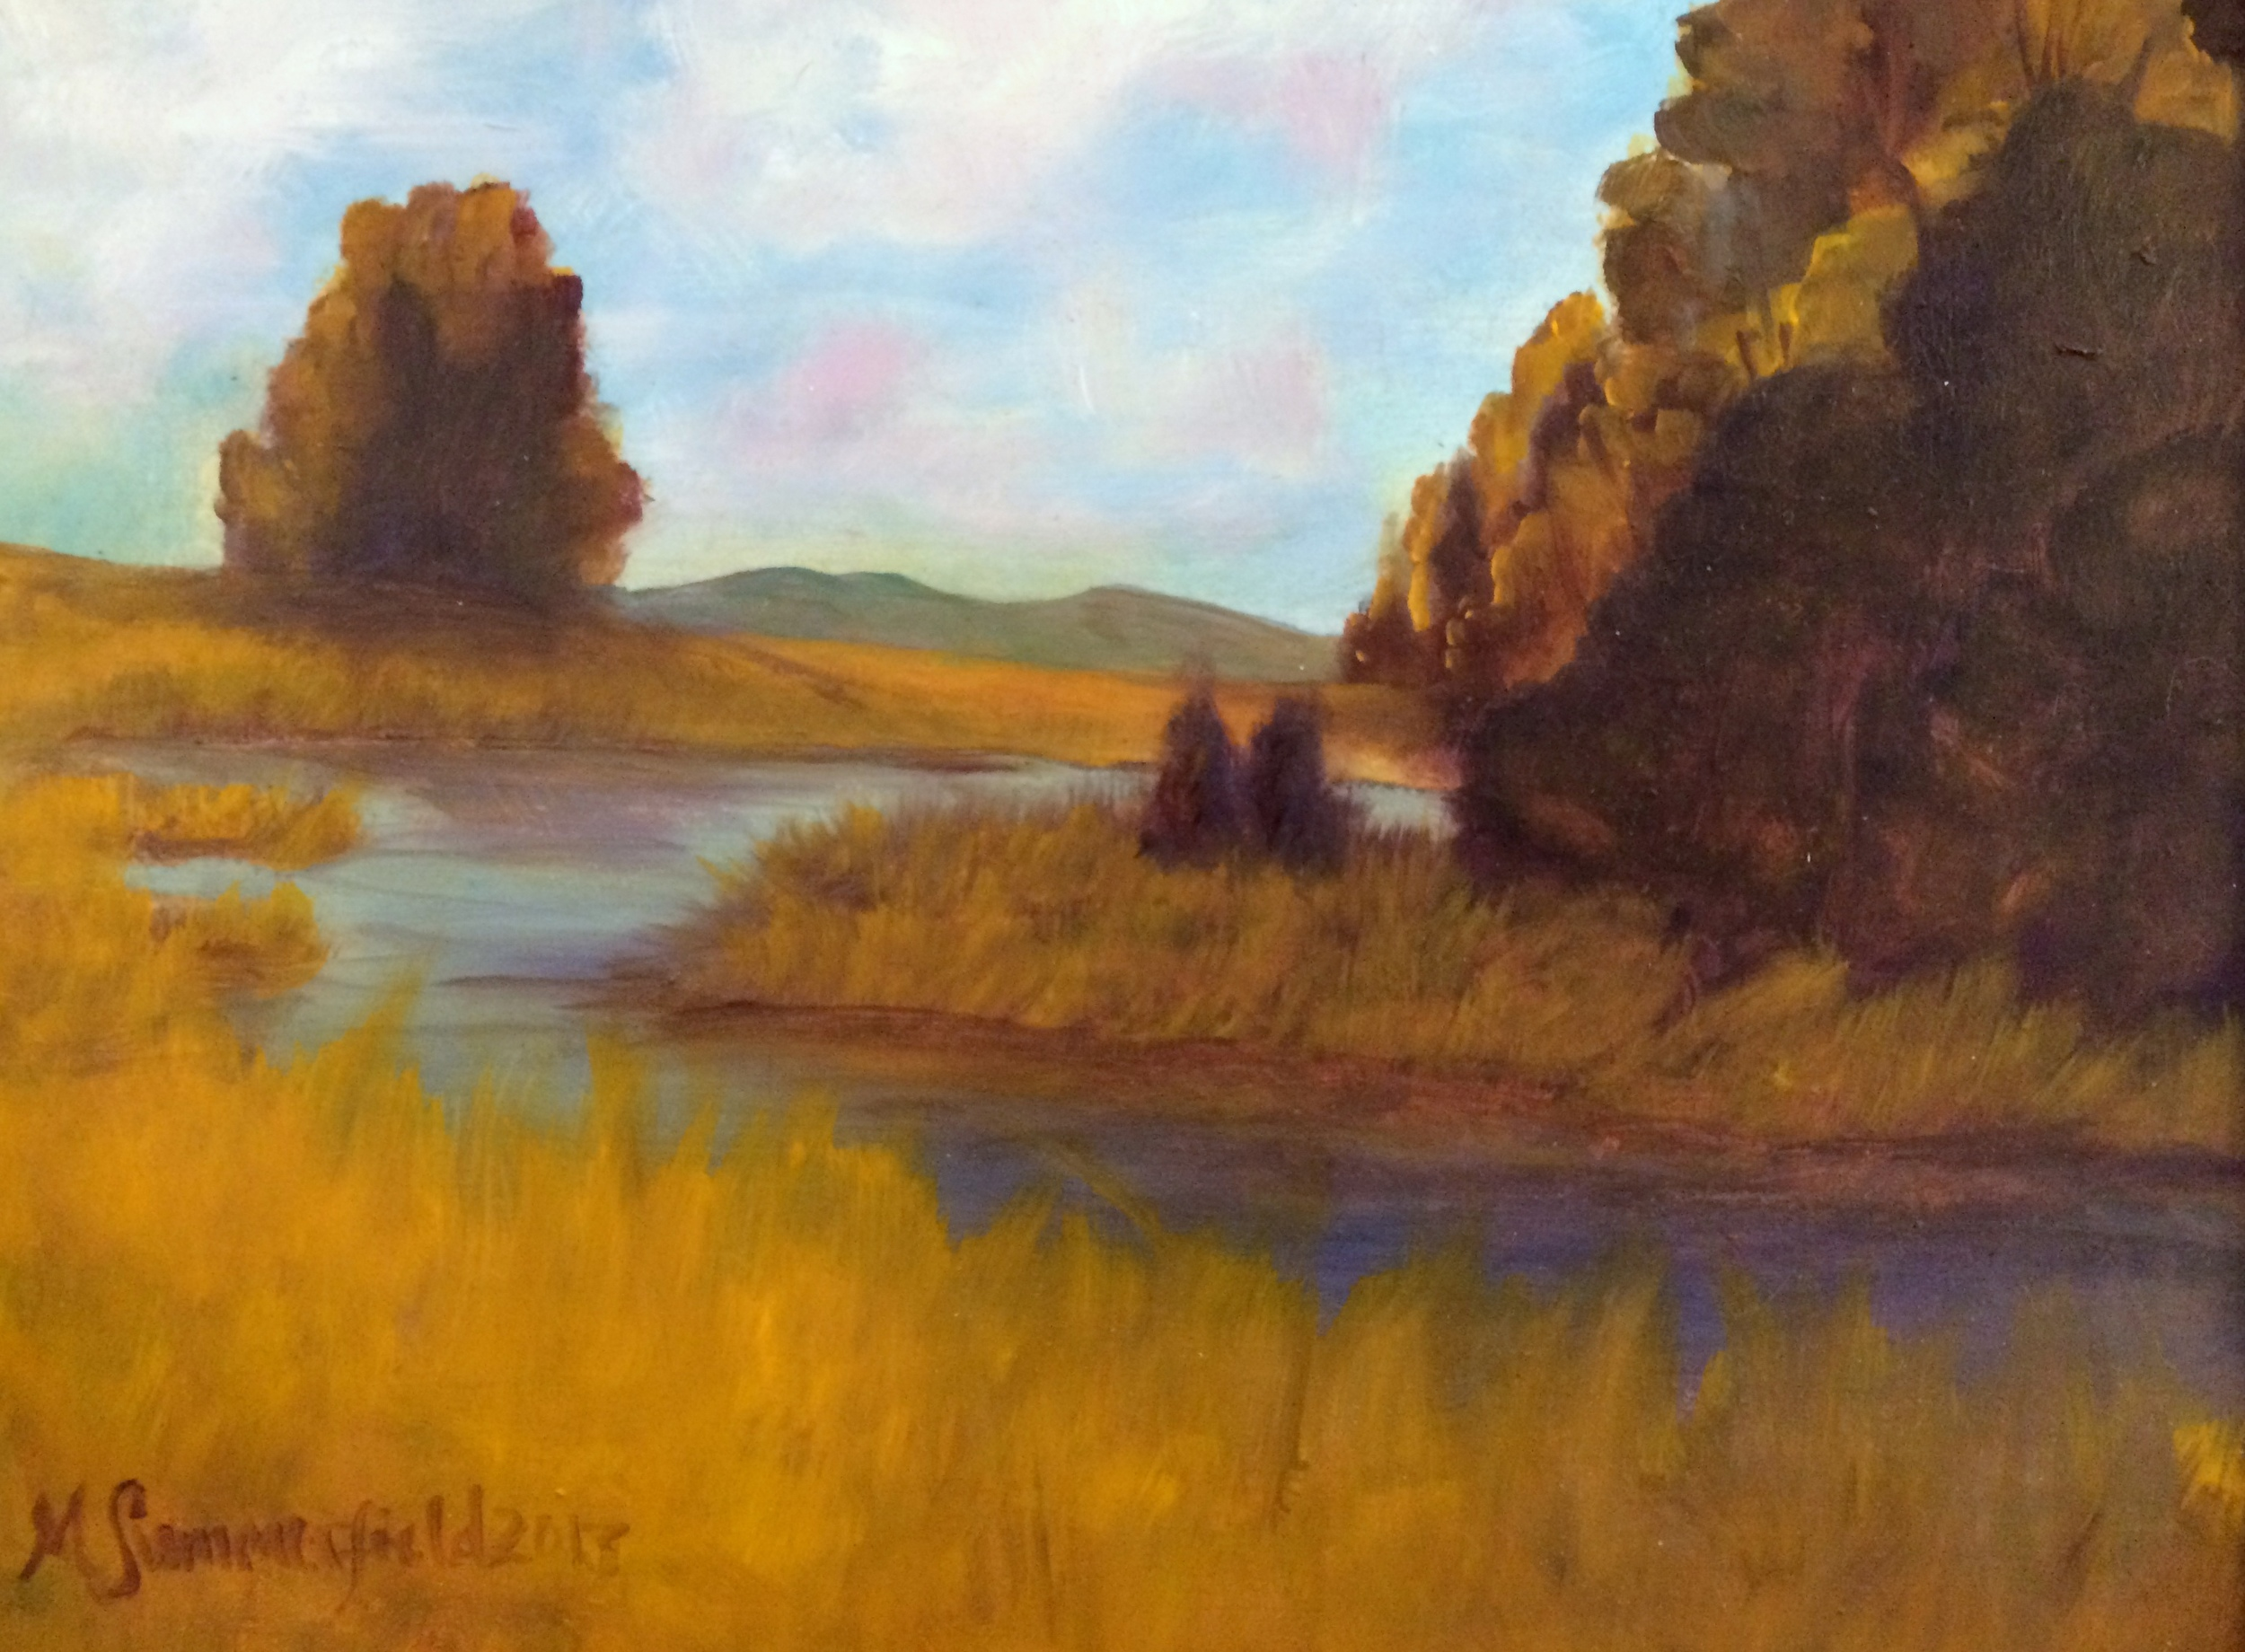 East Gallatin River, Bozeman Montana 11x14 2013. Kaden Cook Medical Benefit July 2013   Baby Kaden Cook was born with Spina Bifida and this was donated for an auction to help raise funds towards their medical bills.